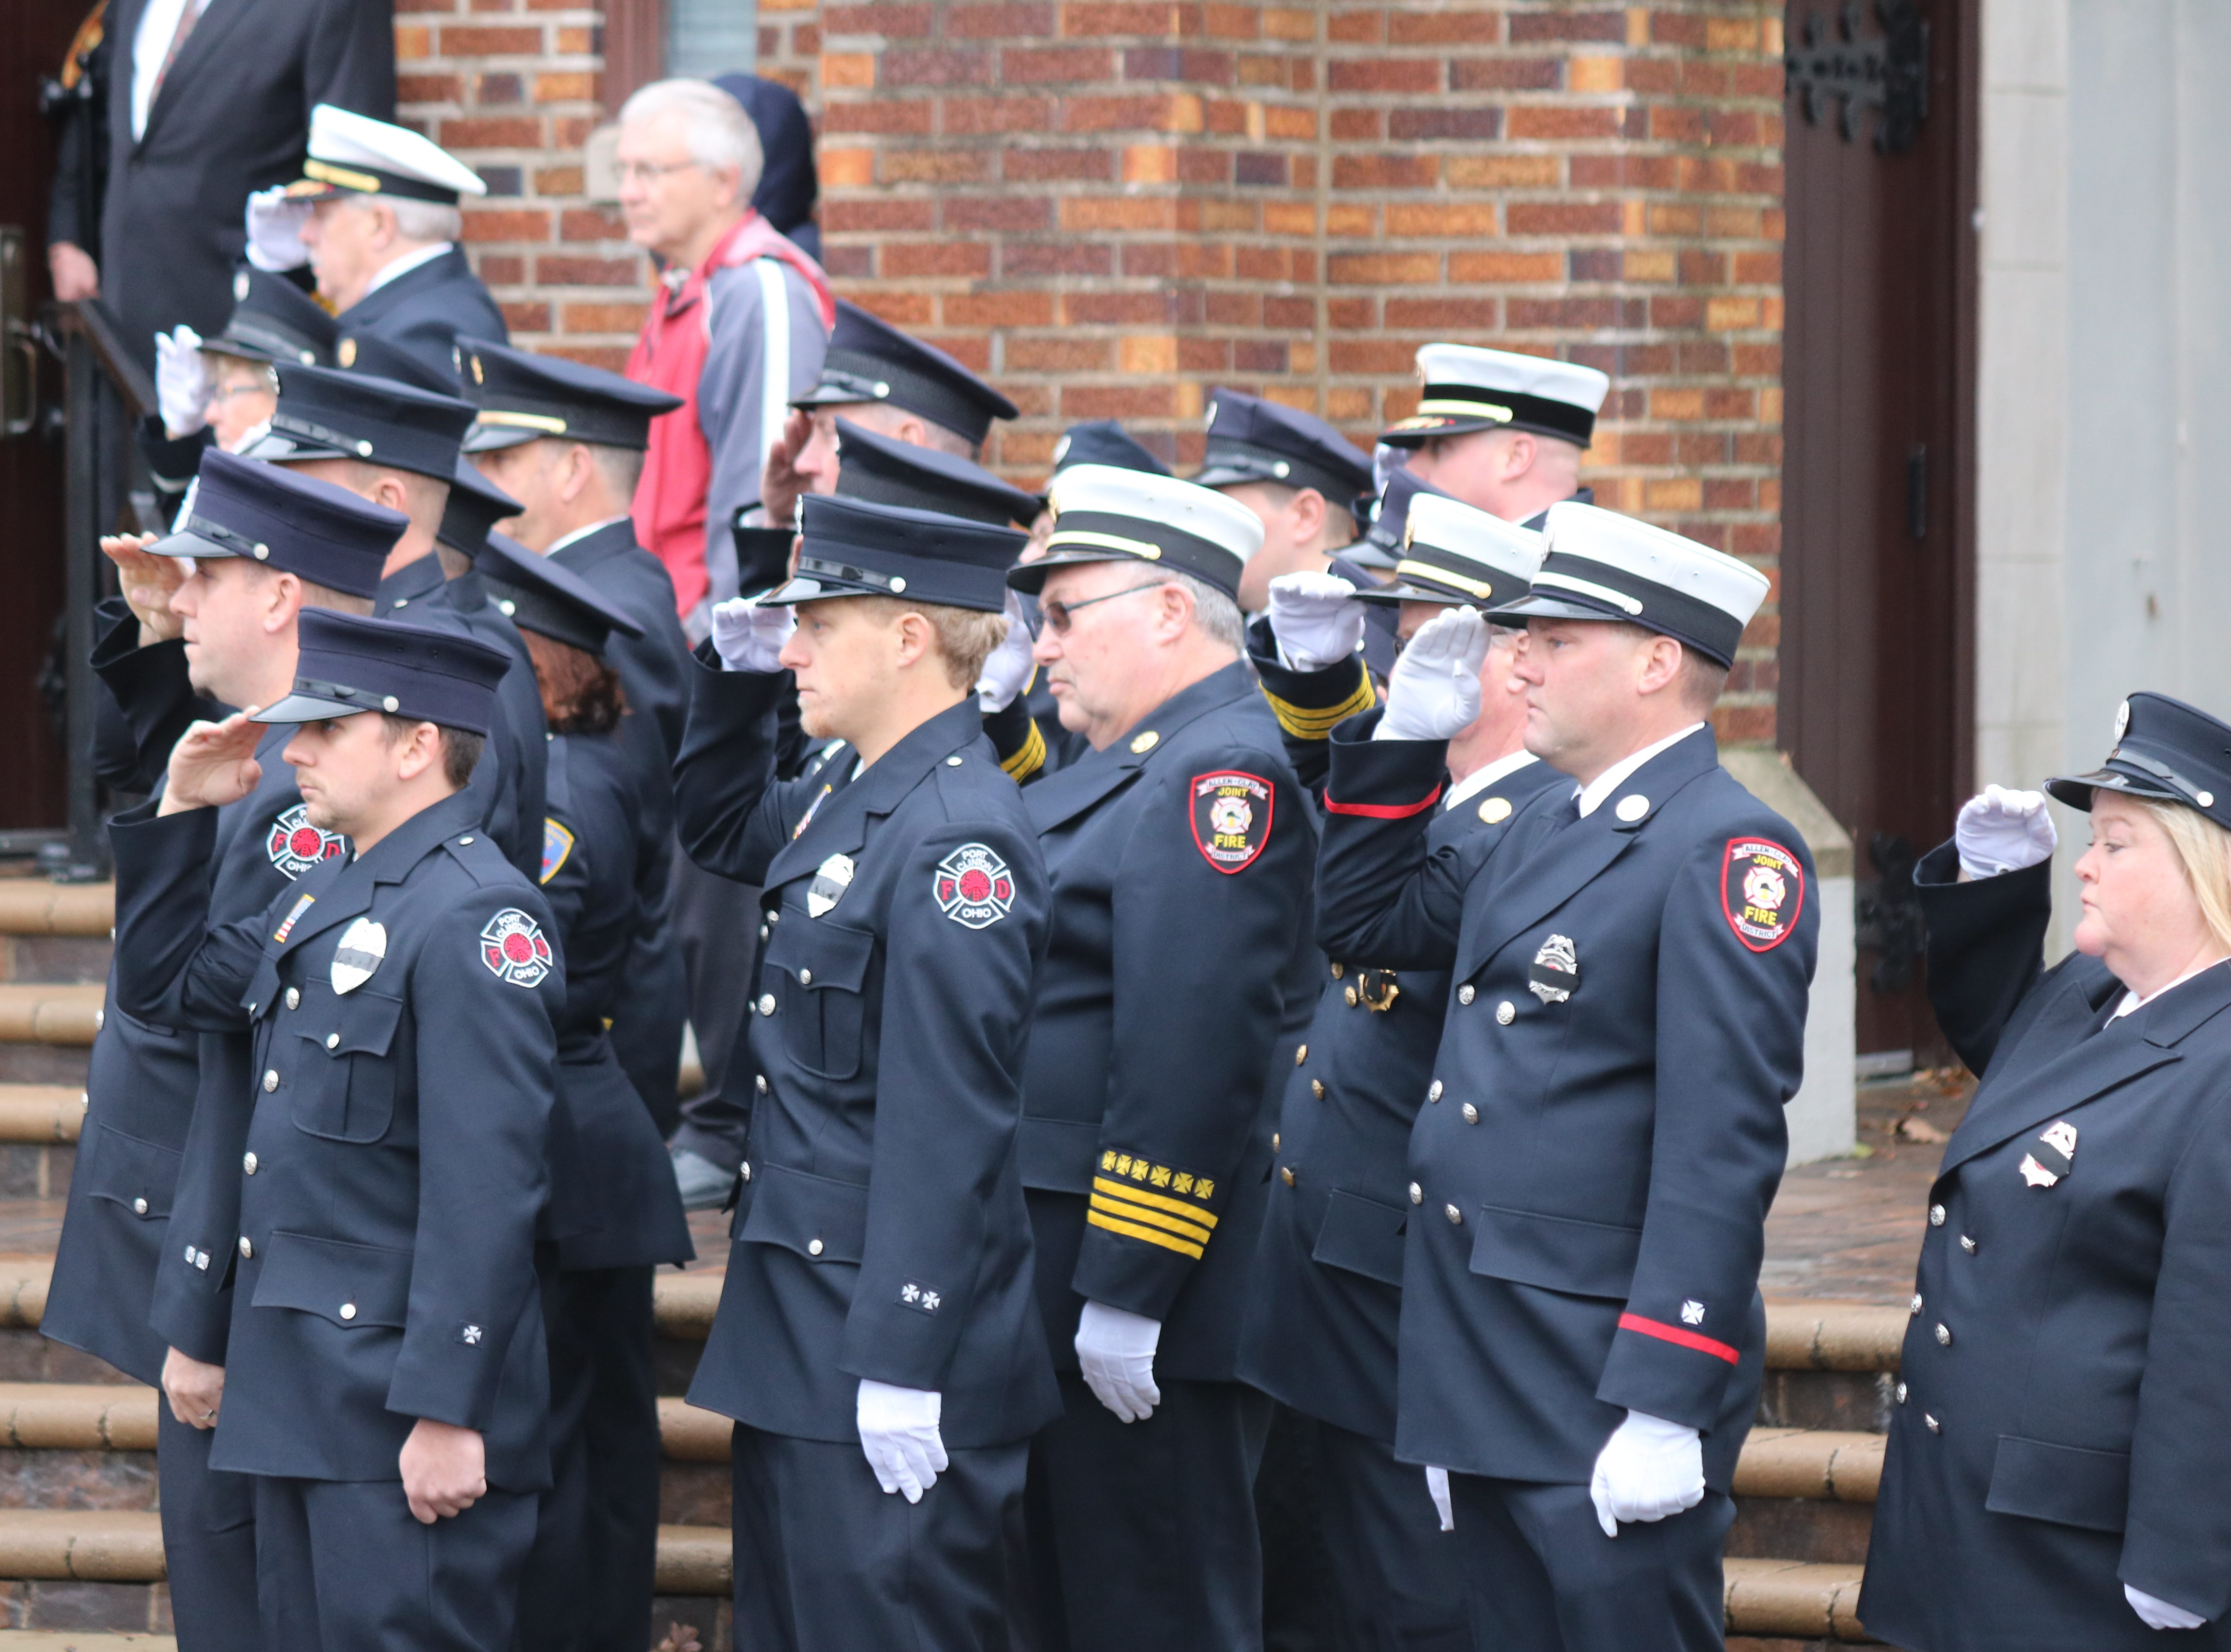 Family, friends and follow first responders mourned the loss of one of their own as they gathered in Oak Harbor on Saturday for the funeral of Carroll Township firefighter Daniel Lucius.